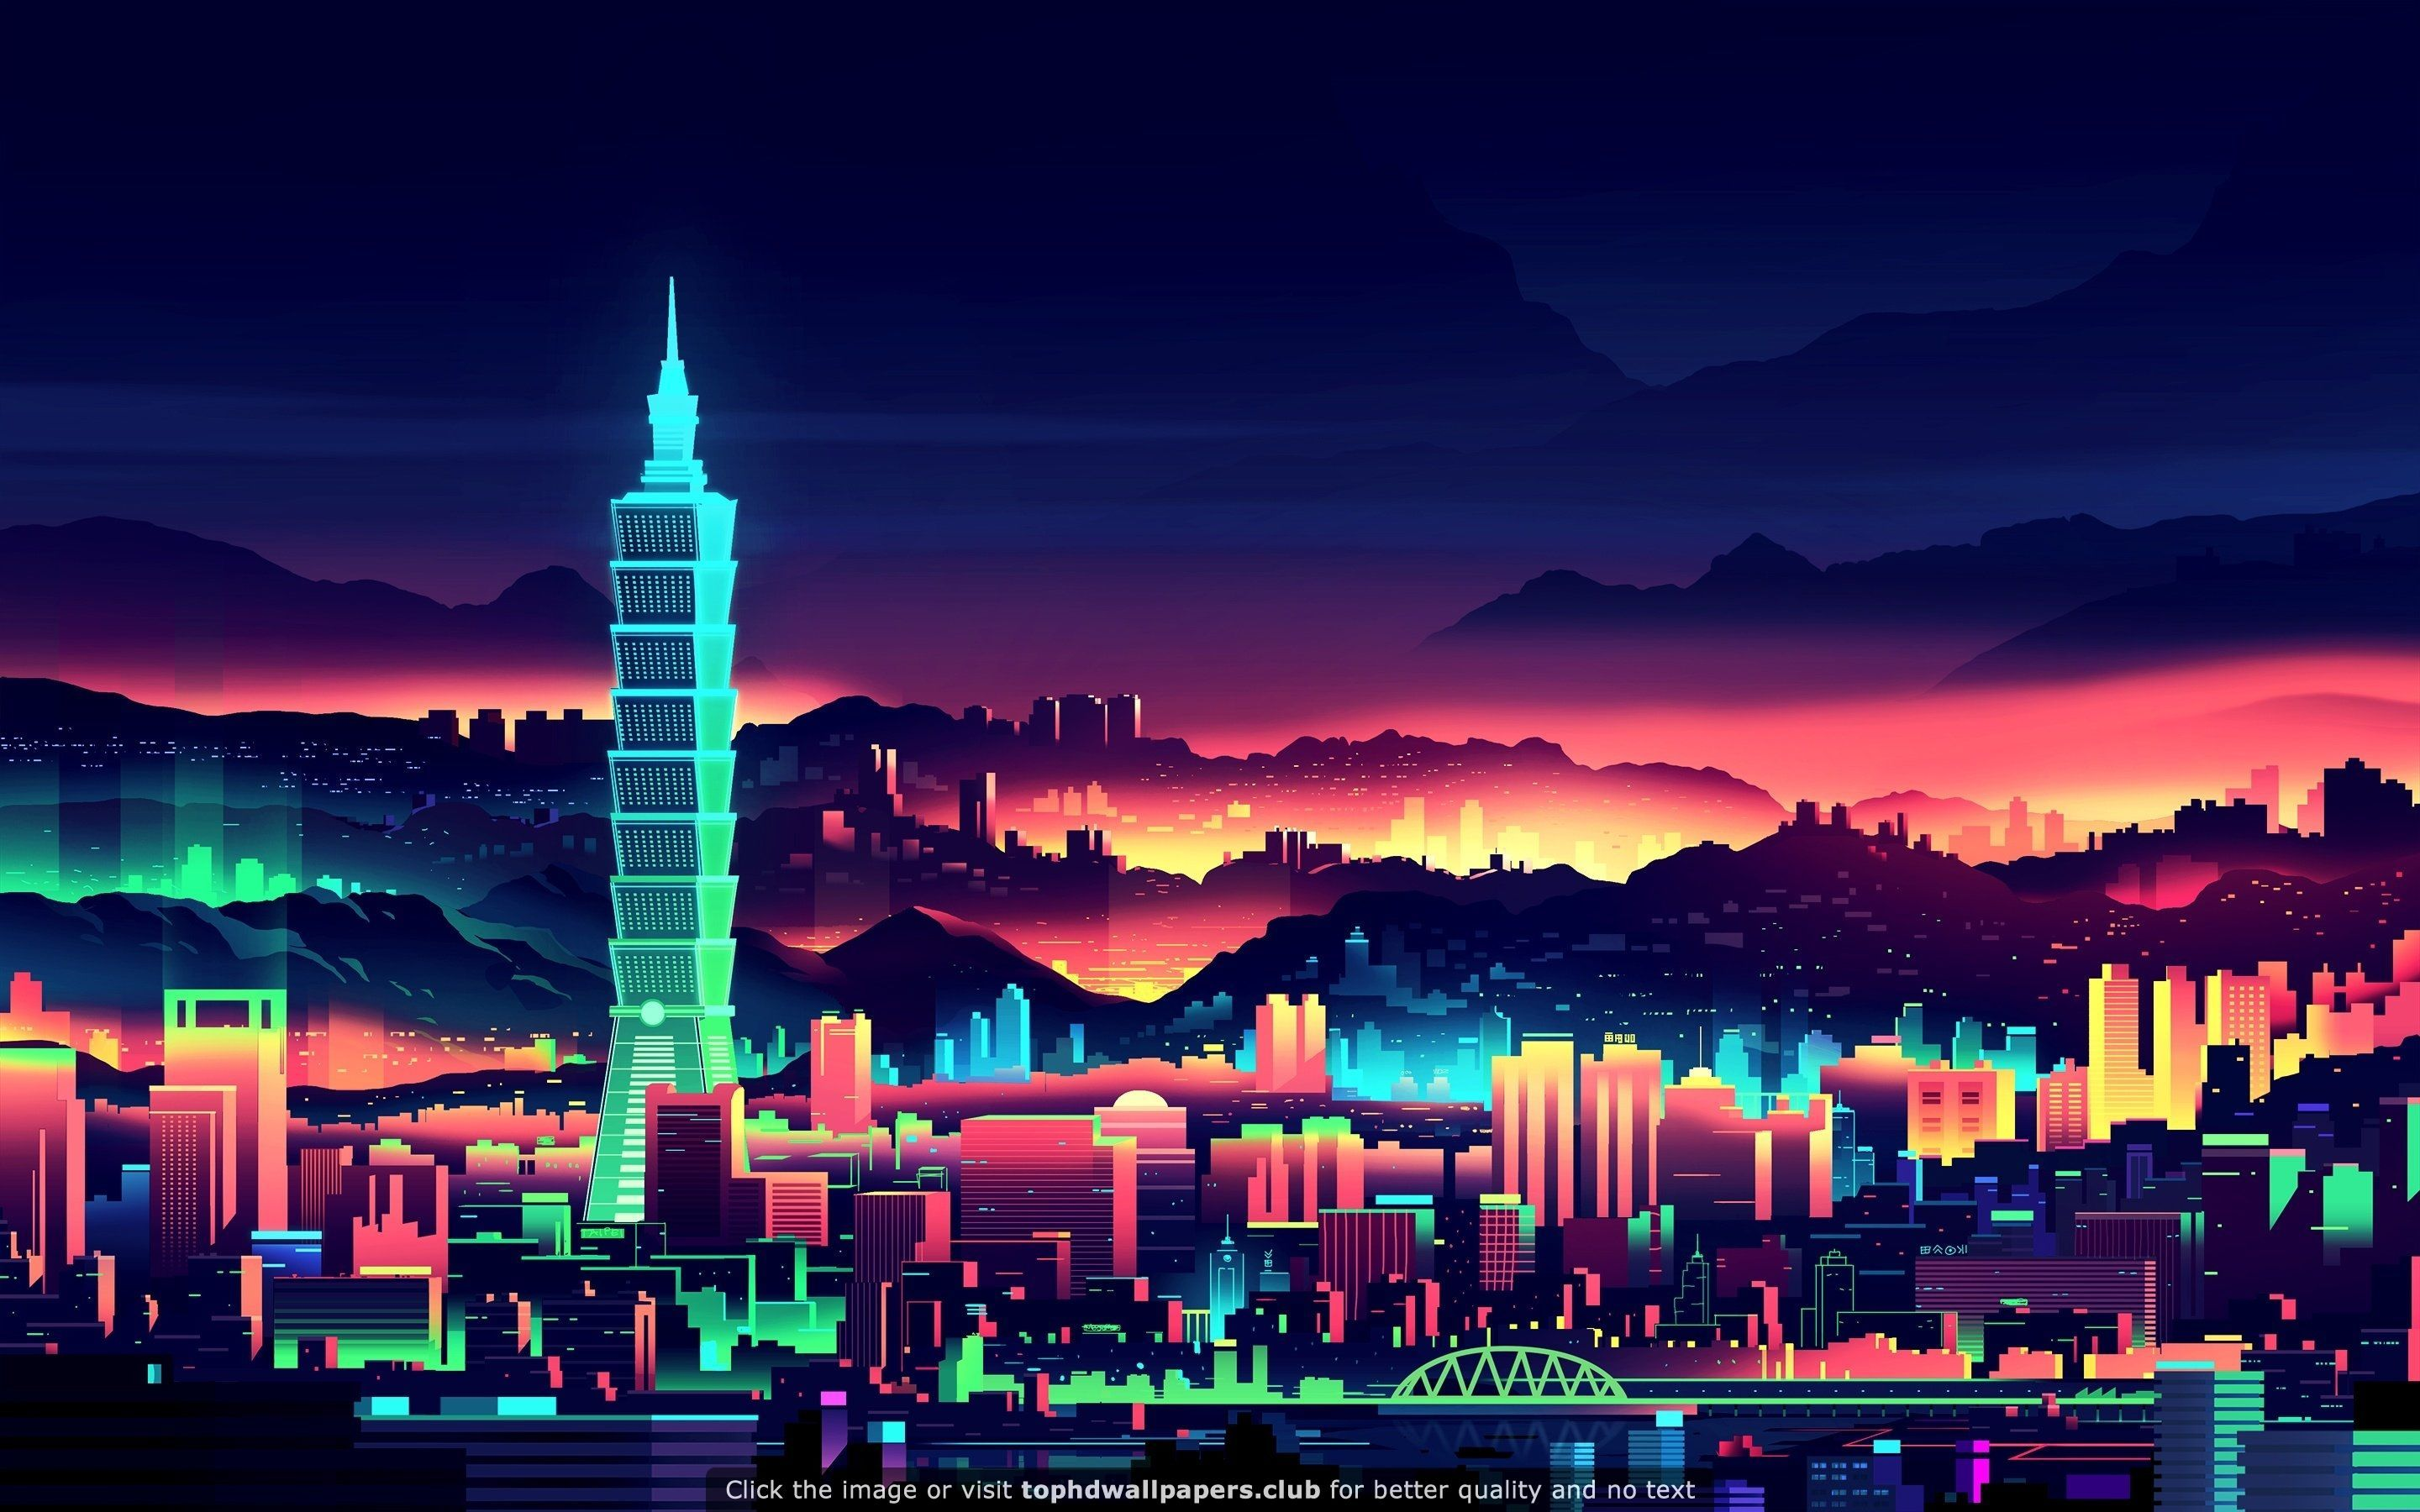 A Pretty Nice Neon Hd Wallpaper Vaporwave Wallpaper Neon Wallpaper City Wallpaper